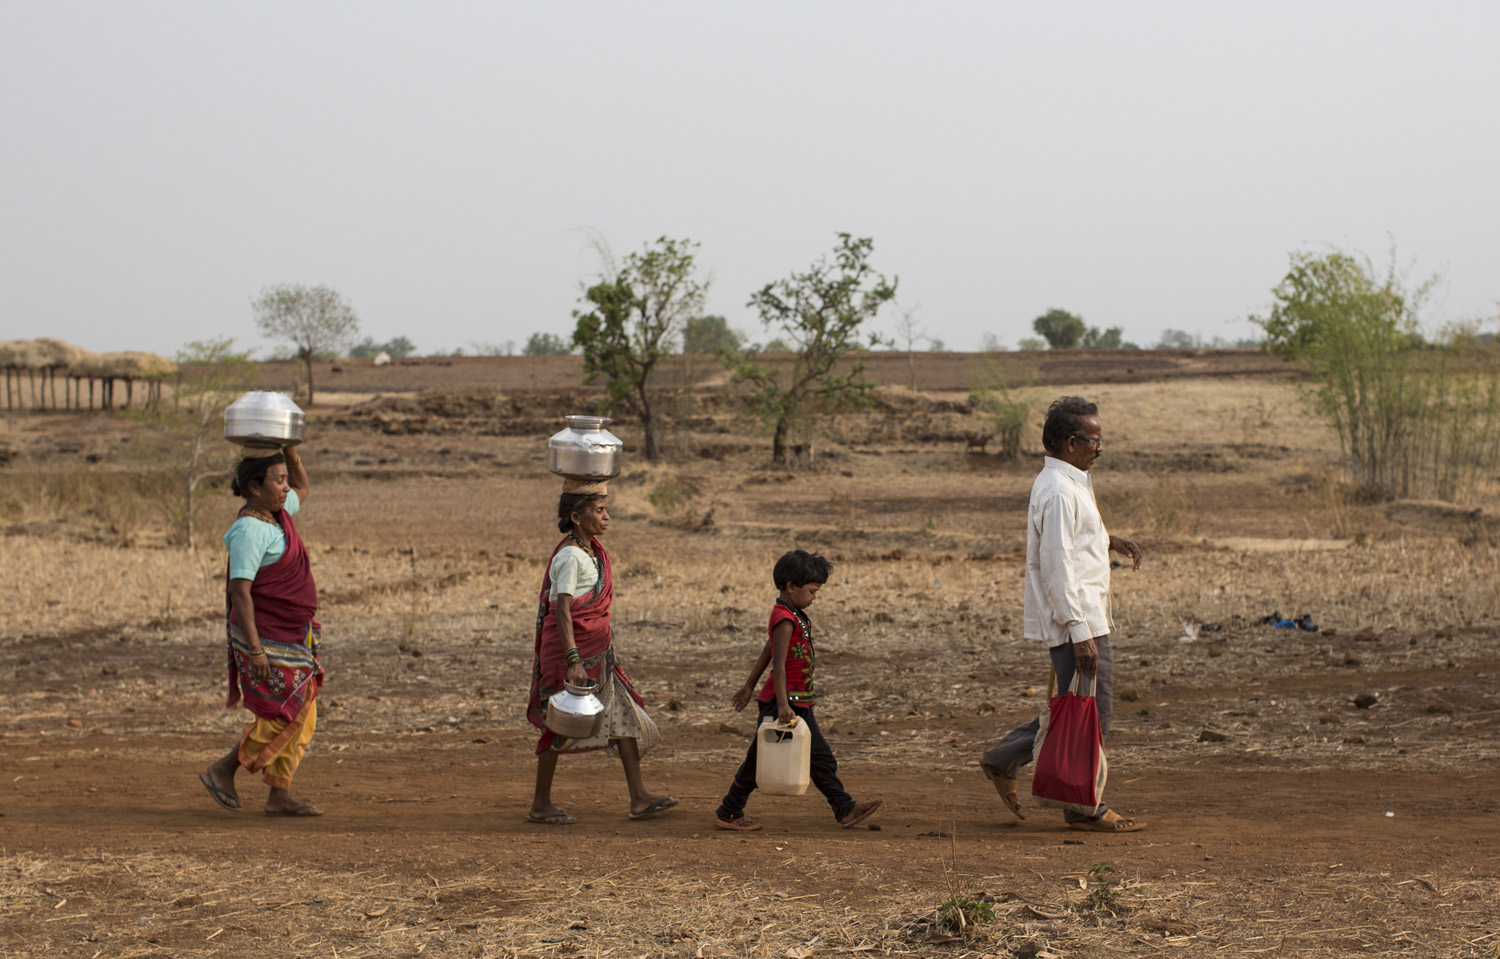 Bhaagi and Sakhri, wives of Sakharam Bhagat walk to fetch water from a well outside Denganmal village.